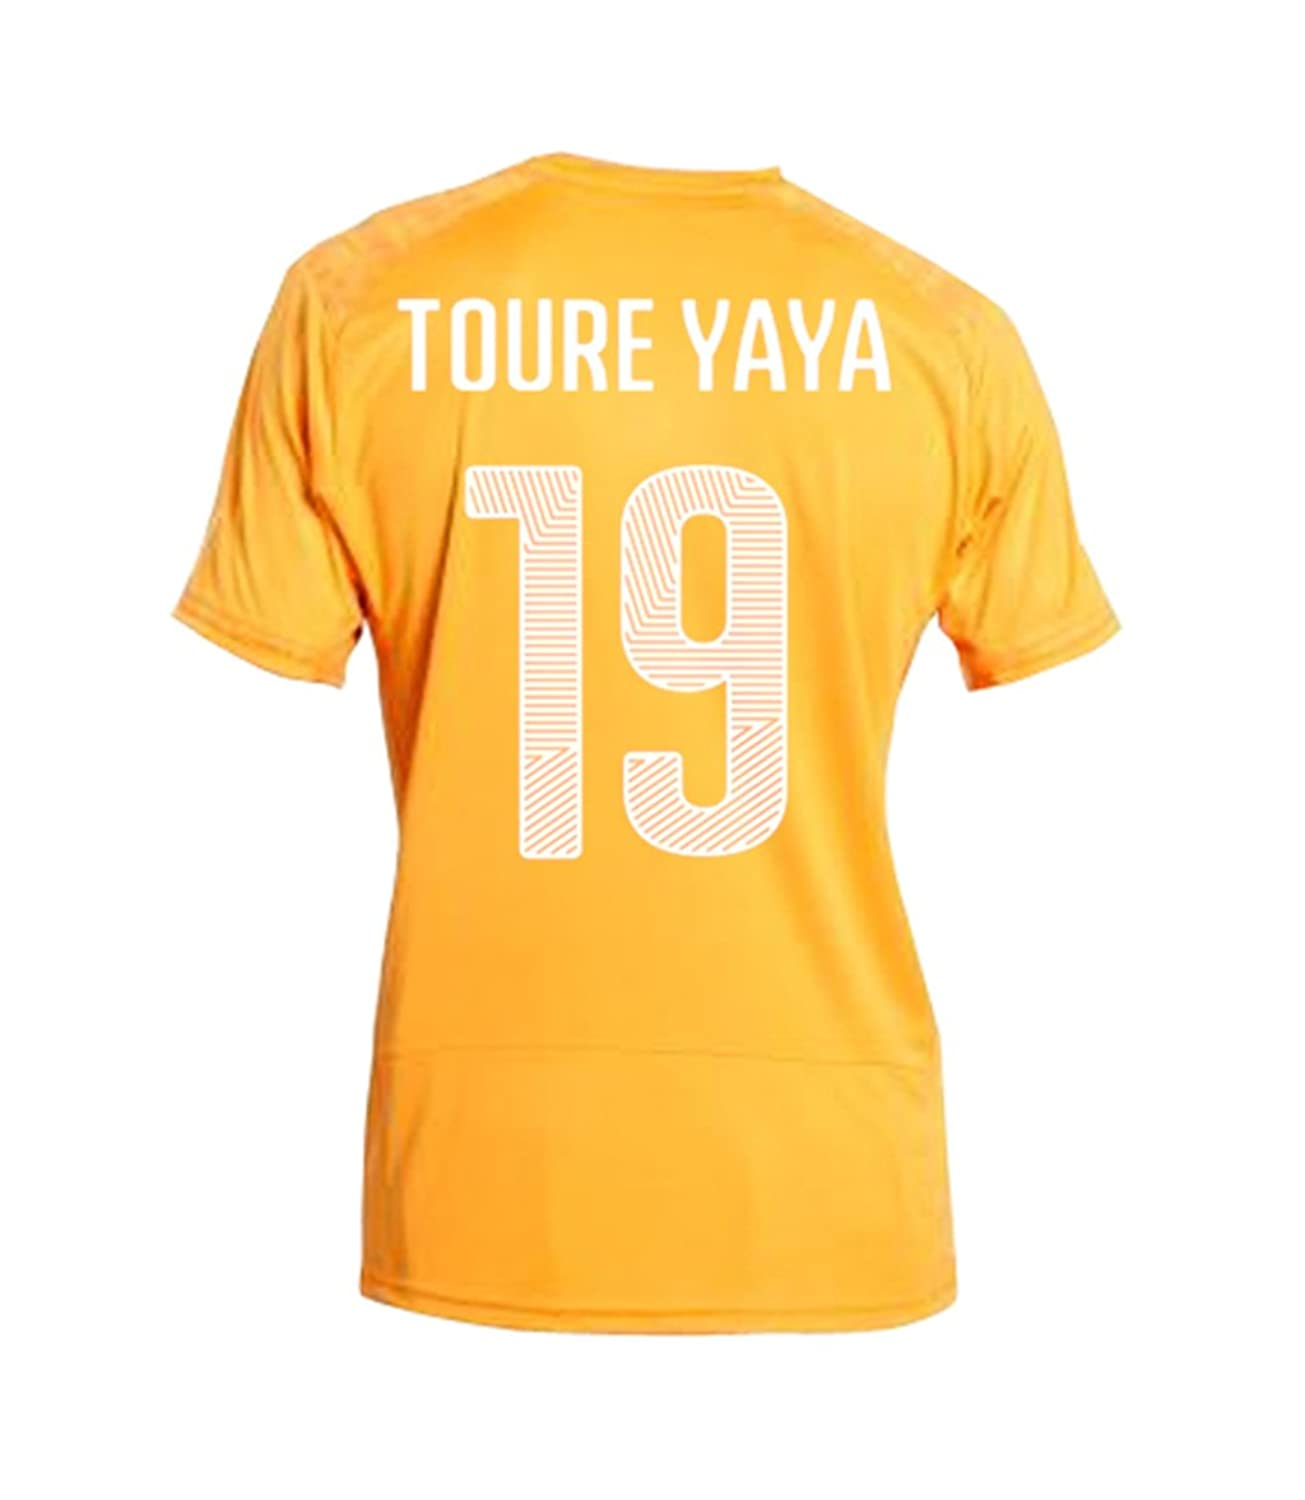 Puma Toure Yaya # 19 Ivory Coast Home jersey World Cup 2014 B00KQ3NXPU3L